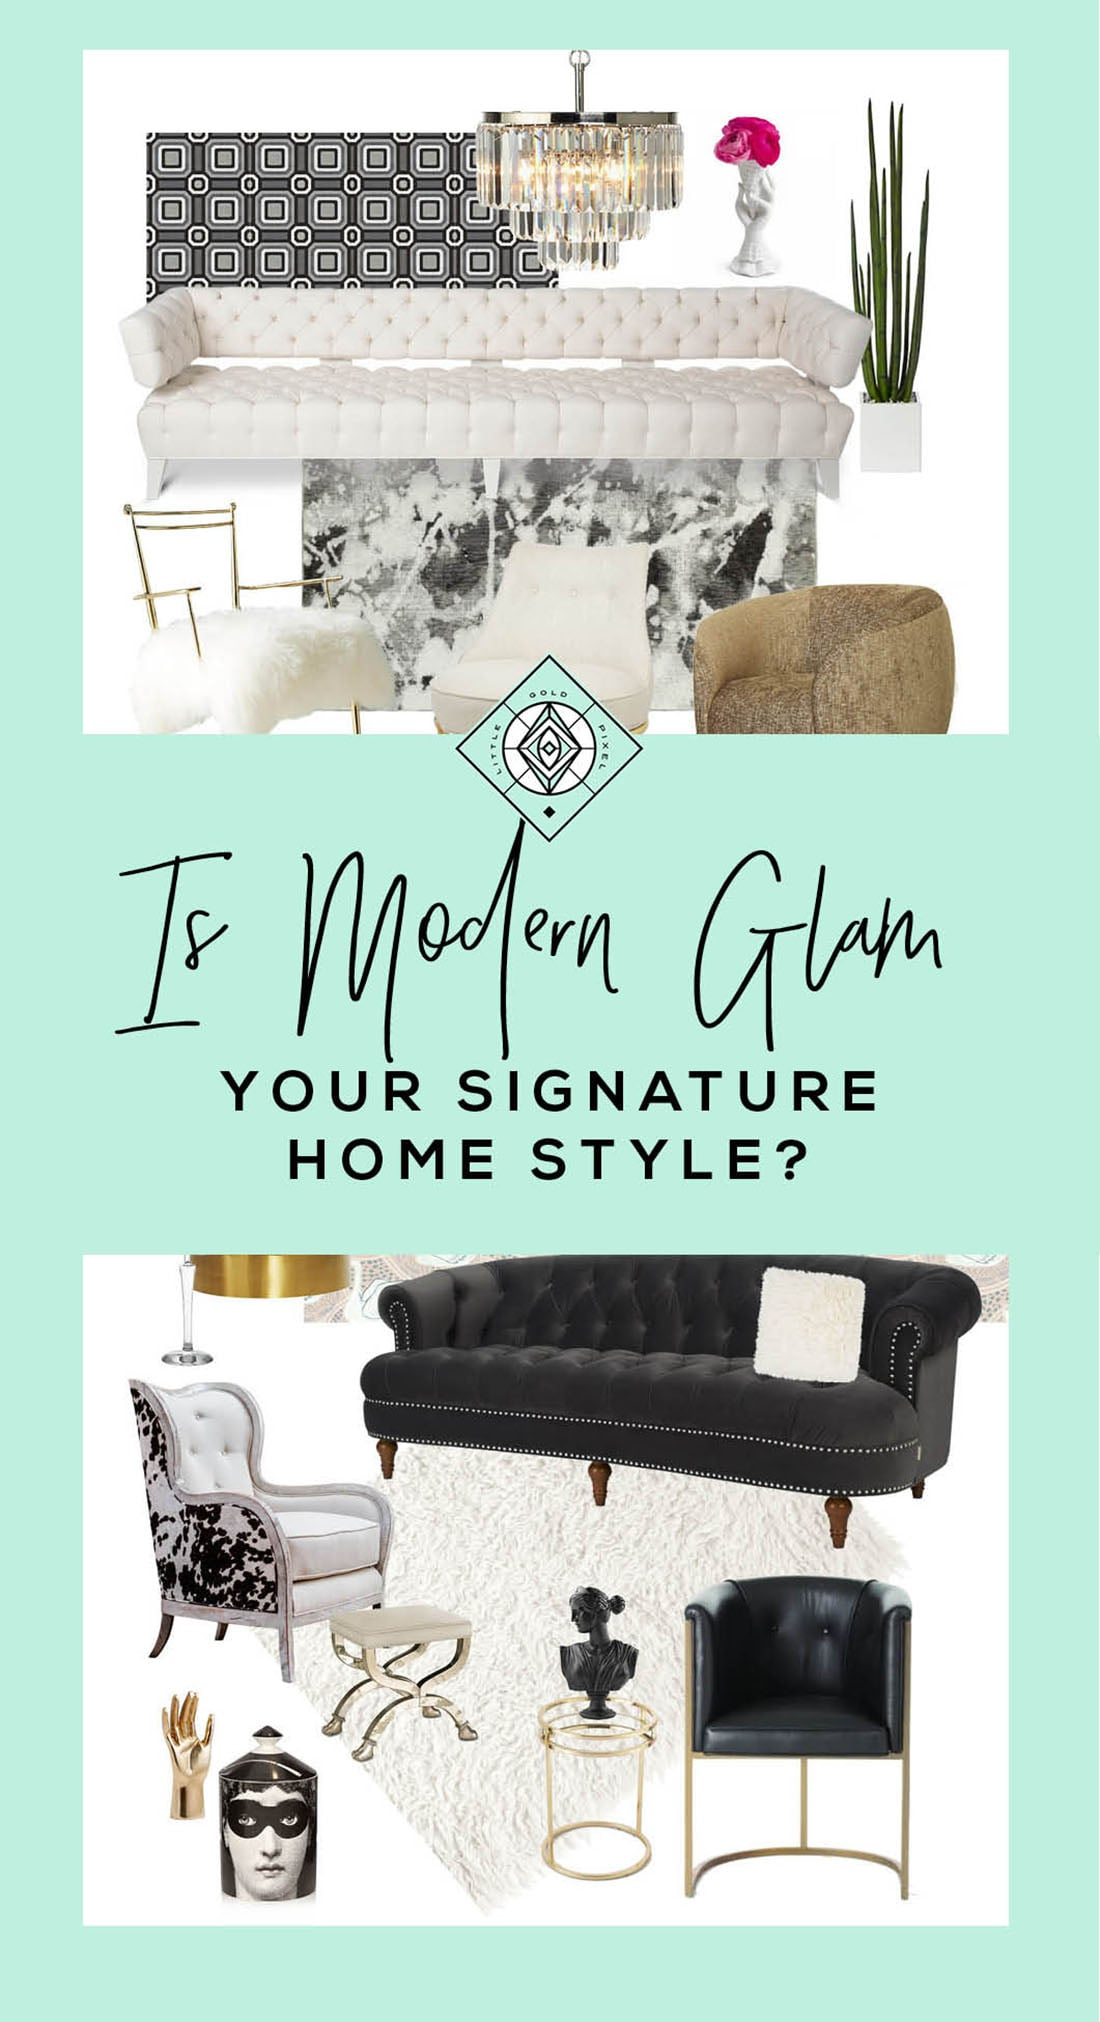 8 Signs Modern Glam Decor is the Right Home Style for You •Little Gold Pixel • Click through to find out if you're compatible with Modern Glam decor!